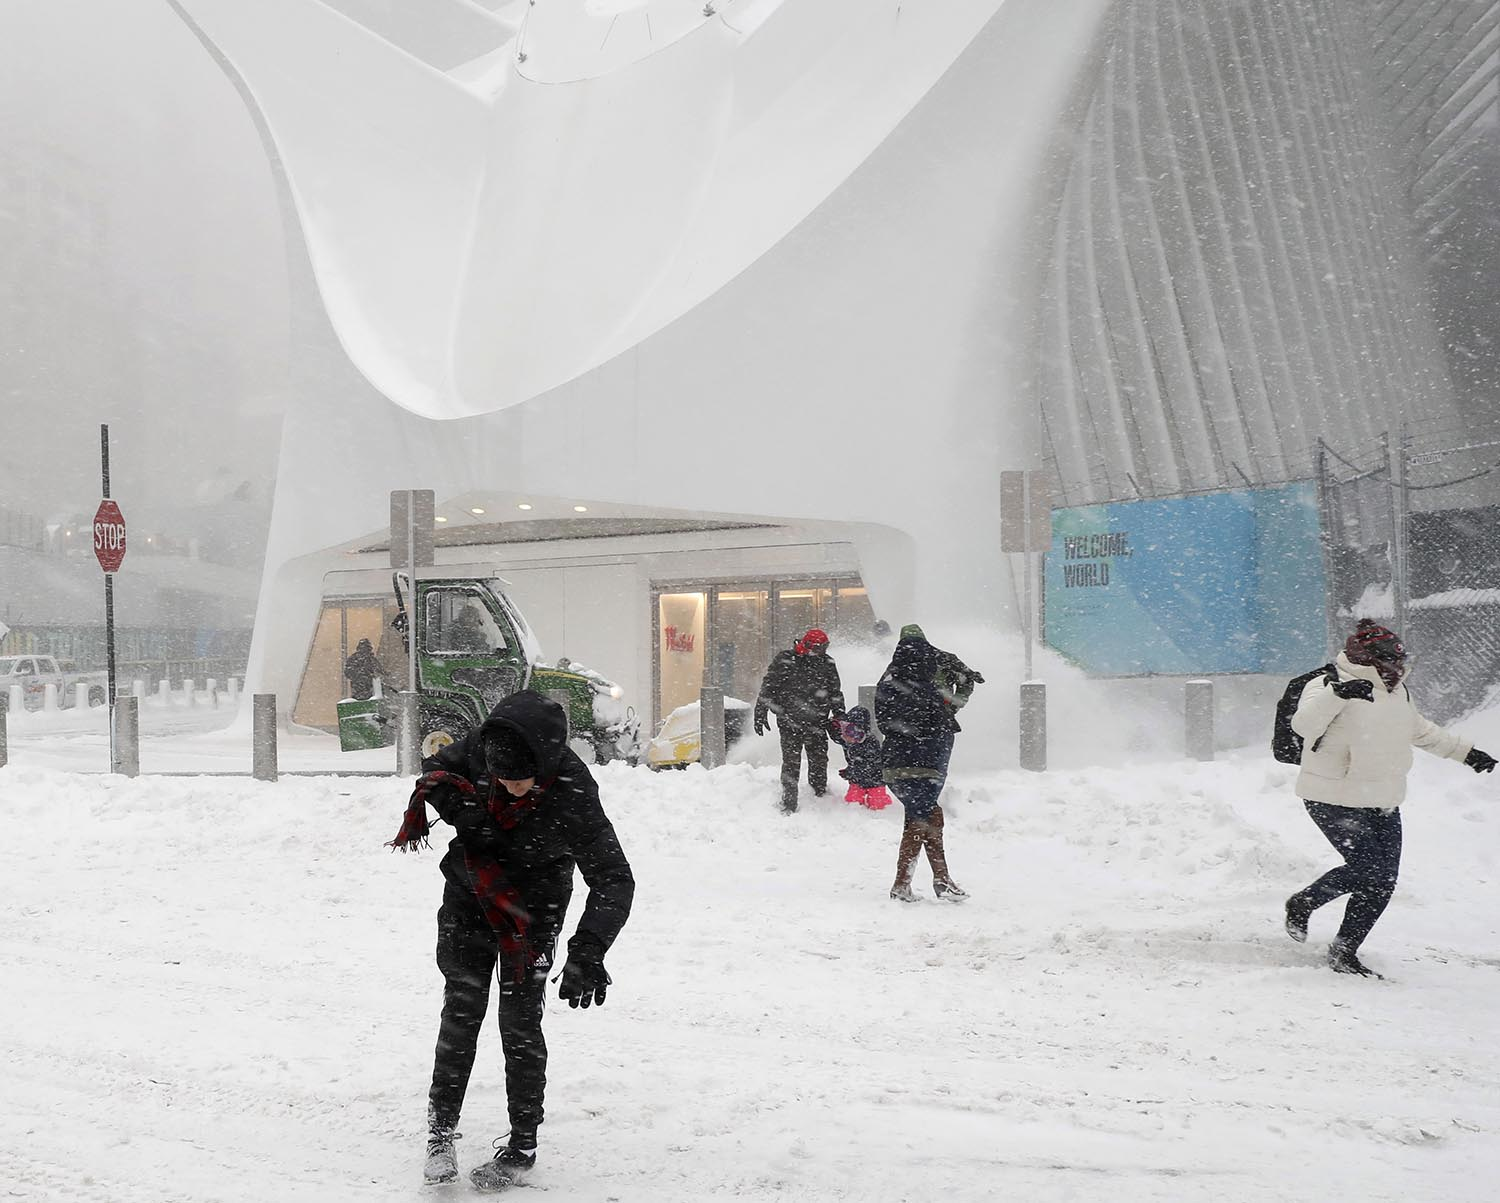 <div class='meta'><div class='origin-logo' data-origin='AP'></div><span class='caption-text' data-credit='AP Photo/Kathy Willens'>People walk through a snowstorm as they exit the Oculus at the Fulton Street transit hub beneath the World Trade Center in New York, Thursday, Jan. 4, 2018.</span></div>